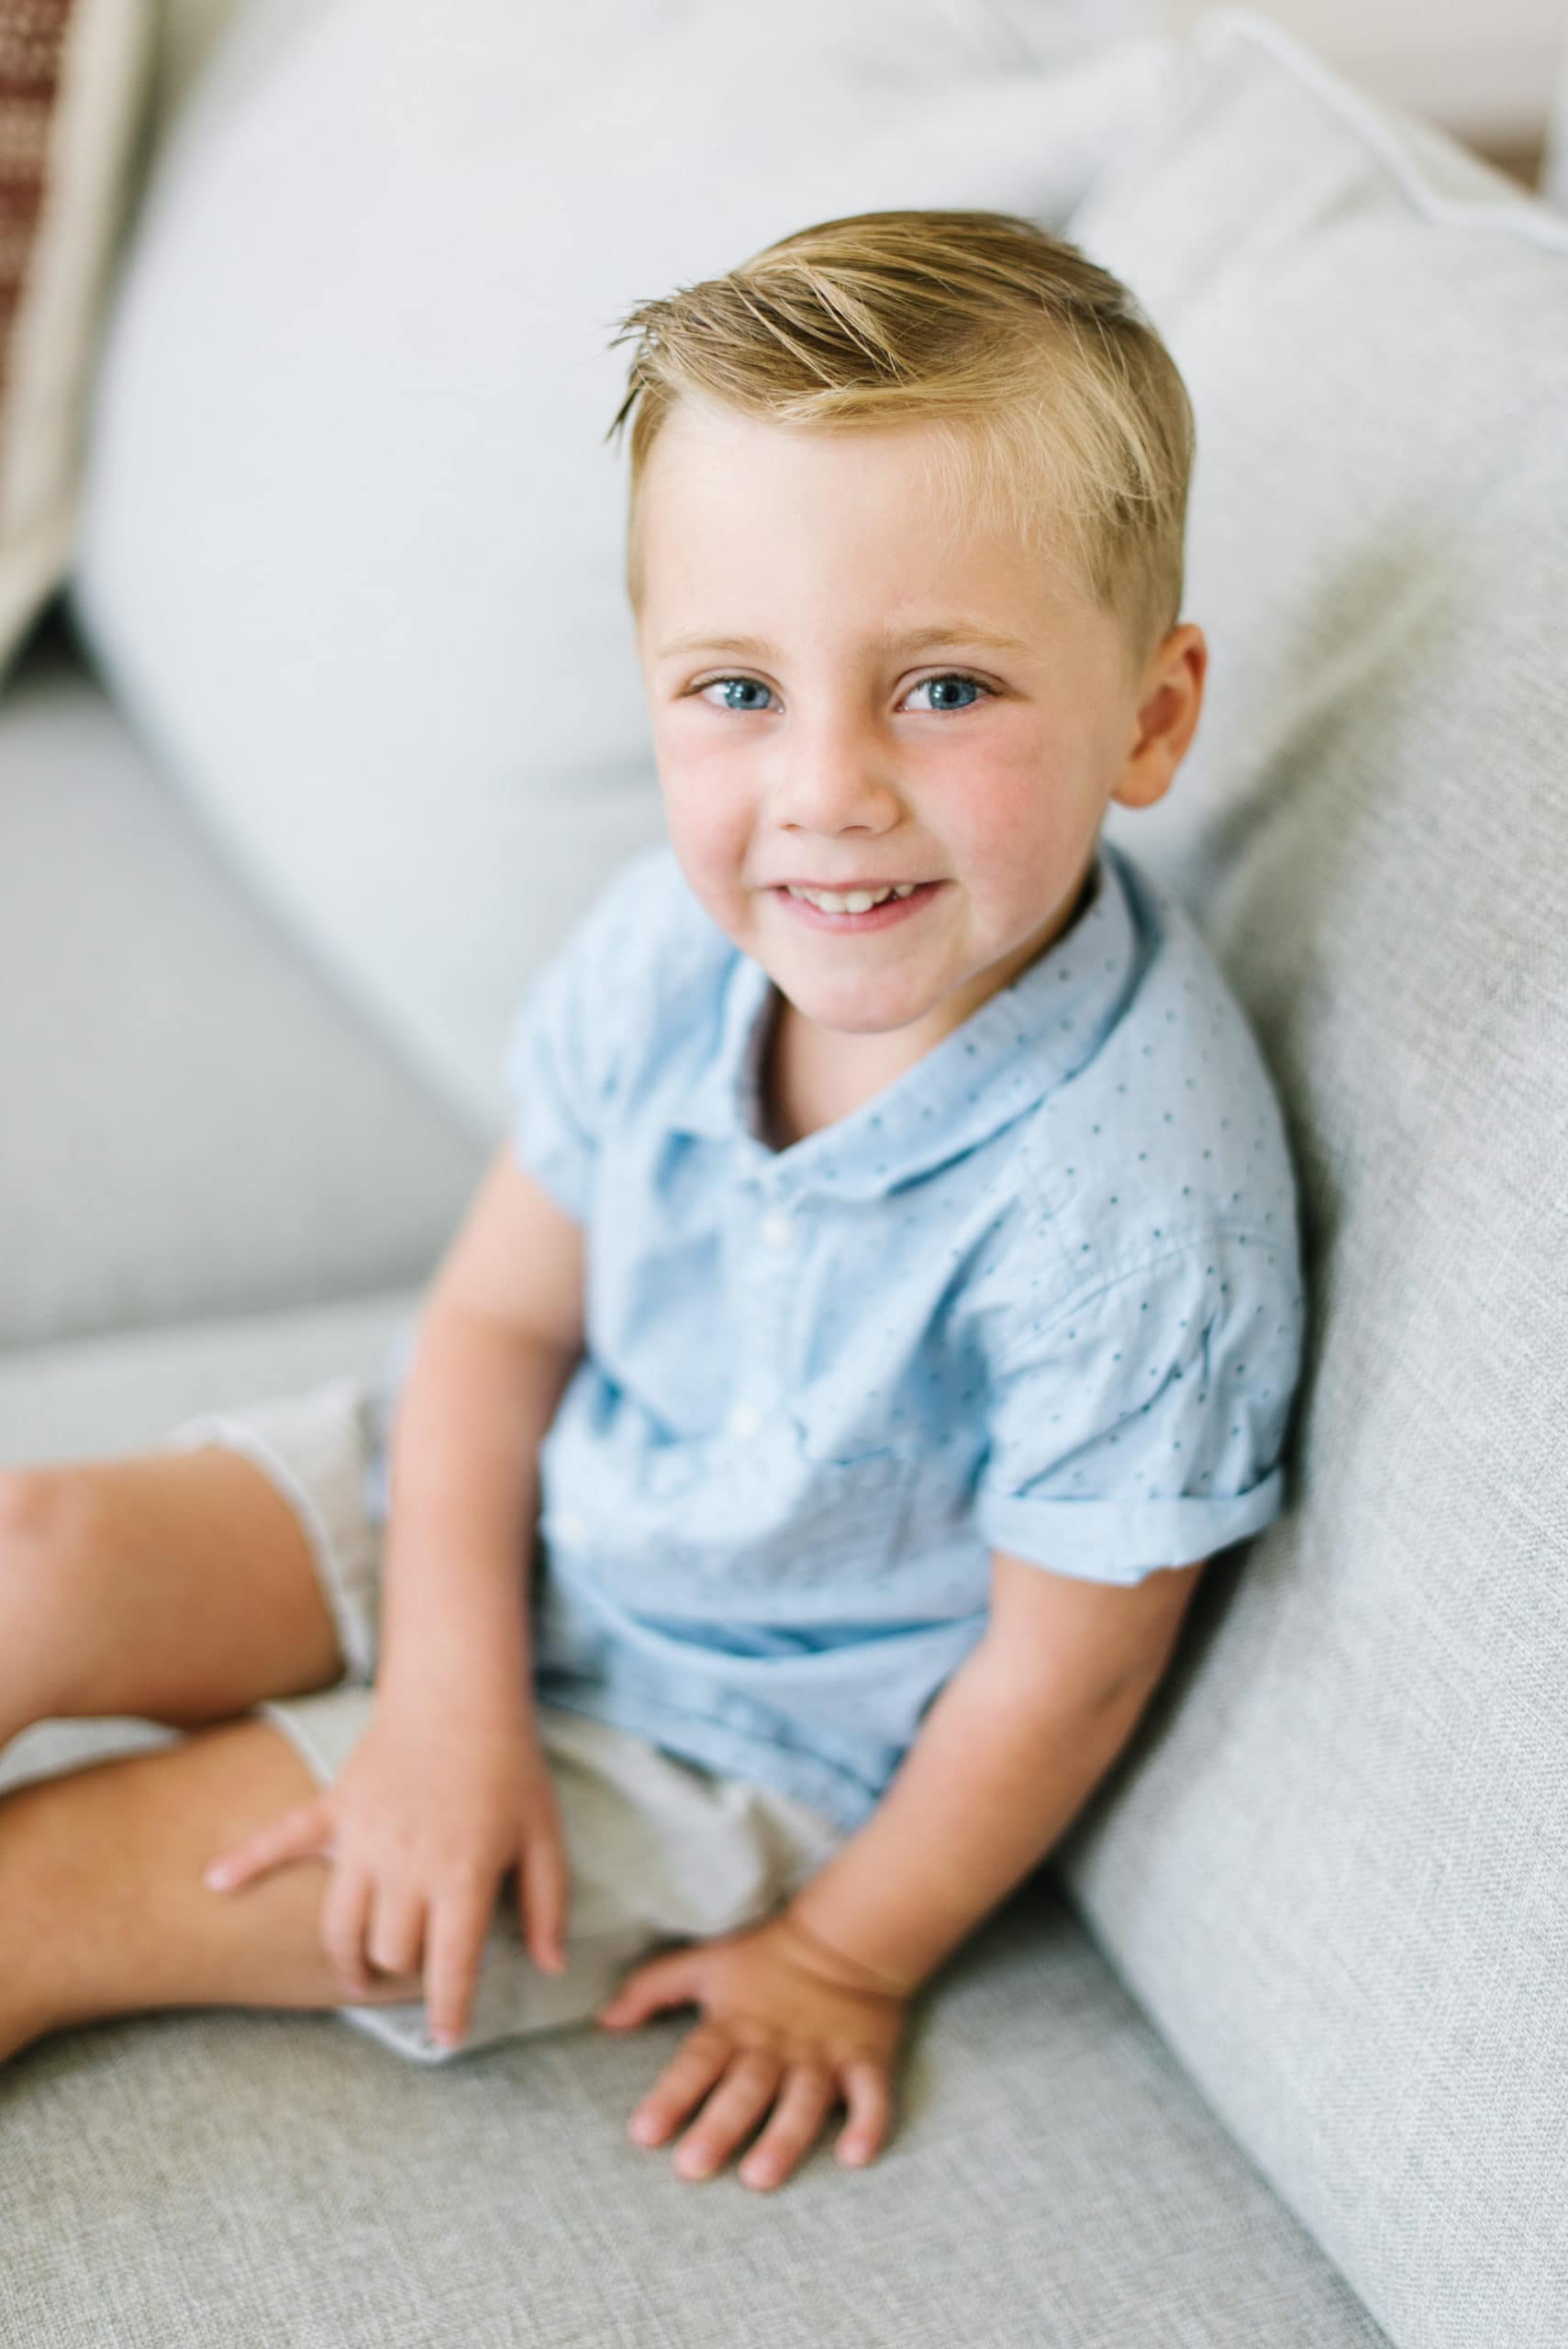 a photo of a young cute boy sitting on a couch